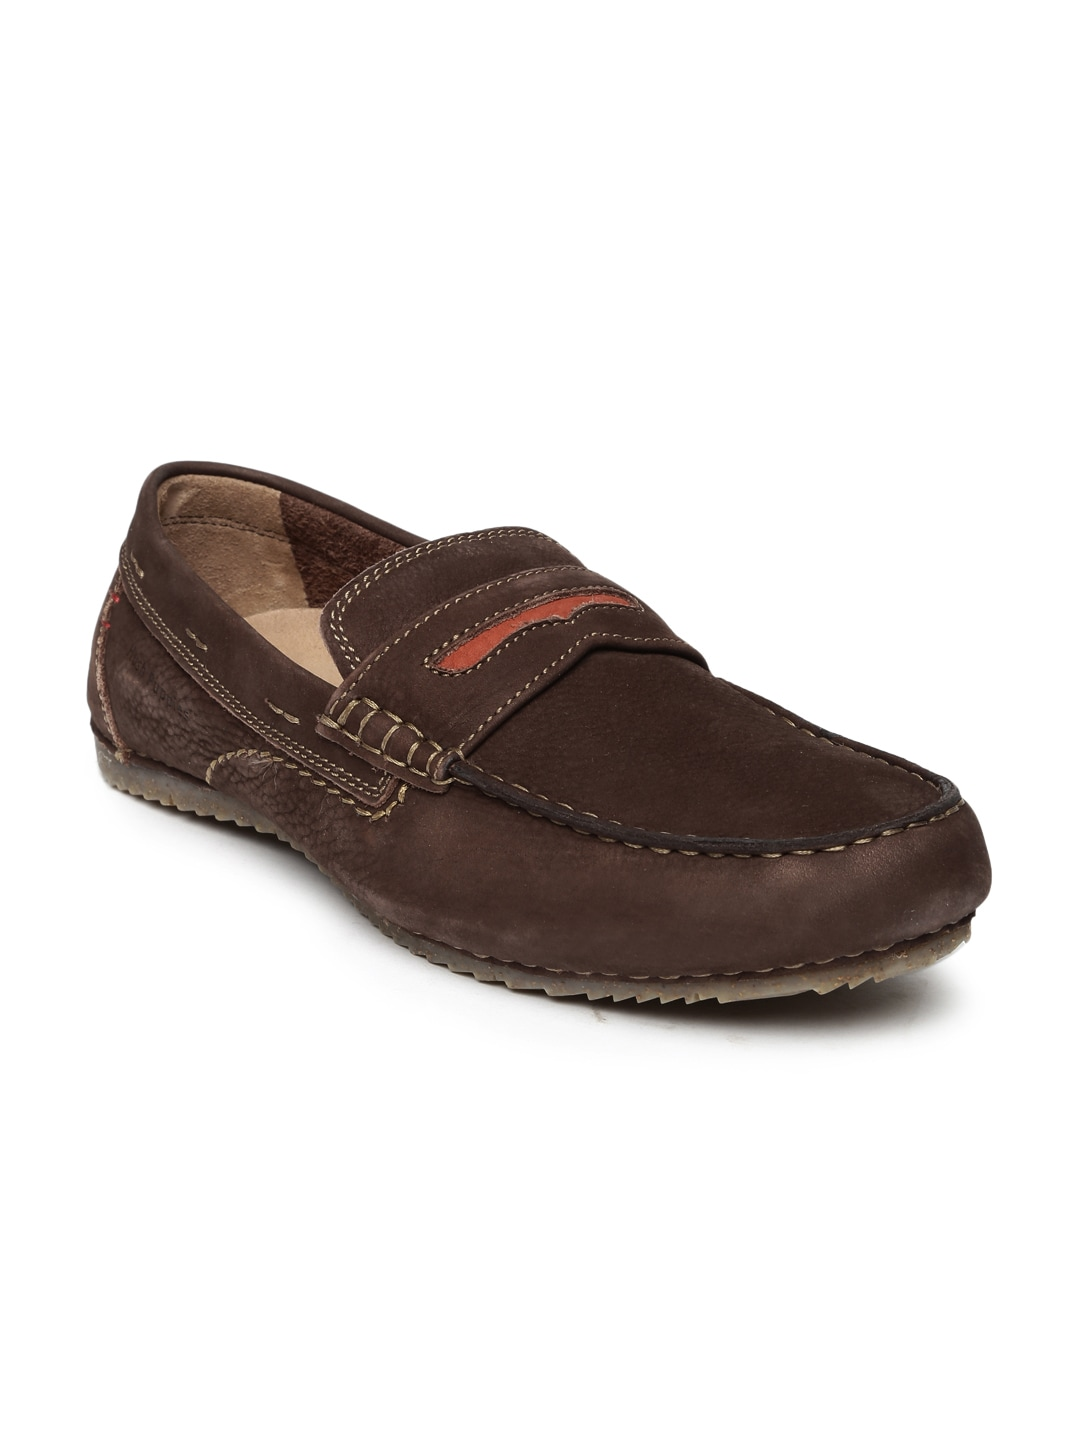 be99215b77d Hush Puppies Ceil Penny Brown Moccasins for women - Get stylish ...